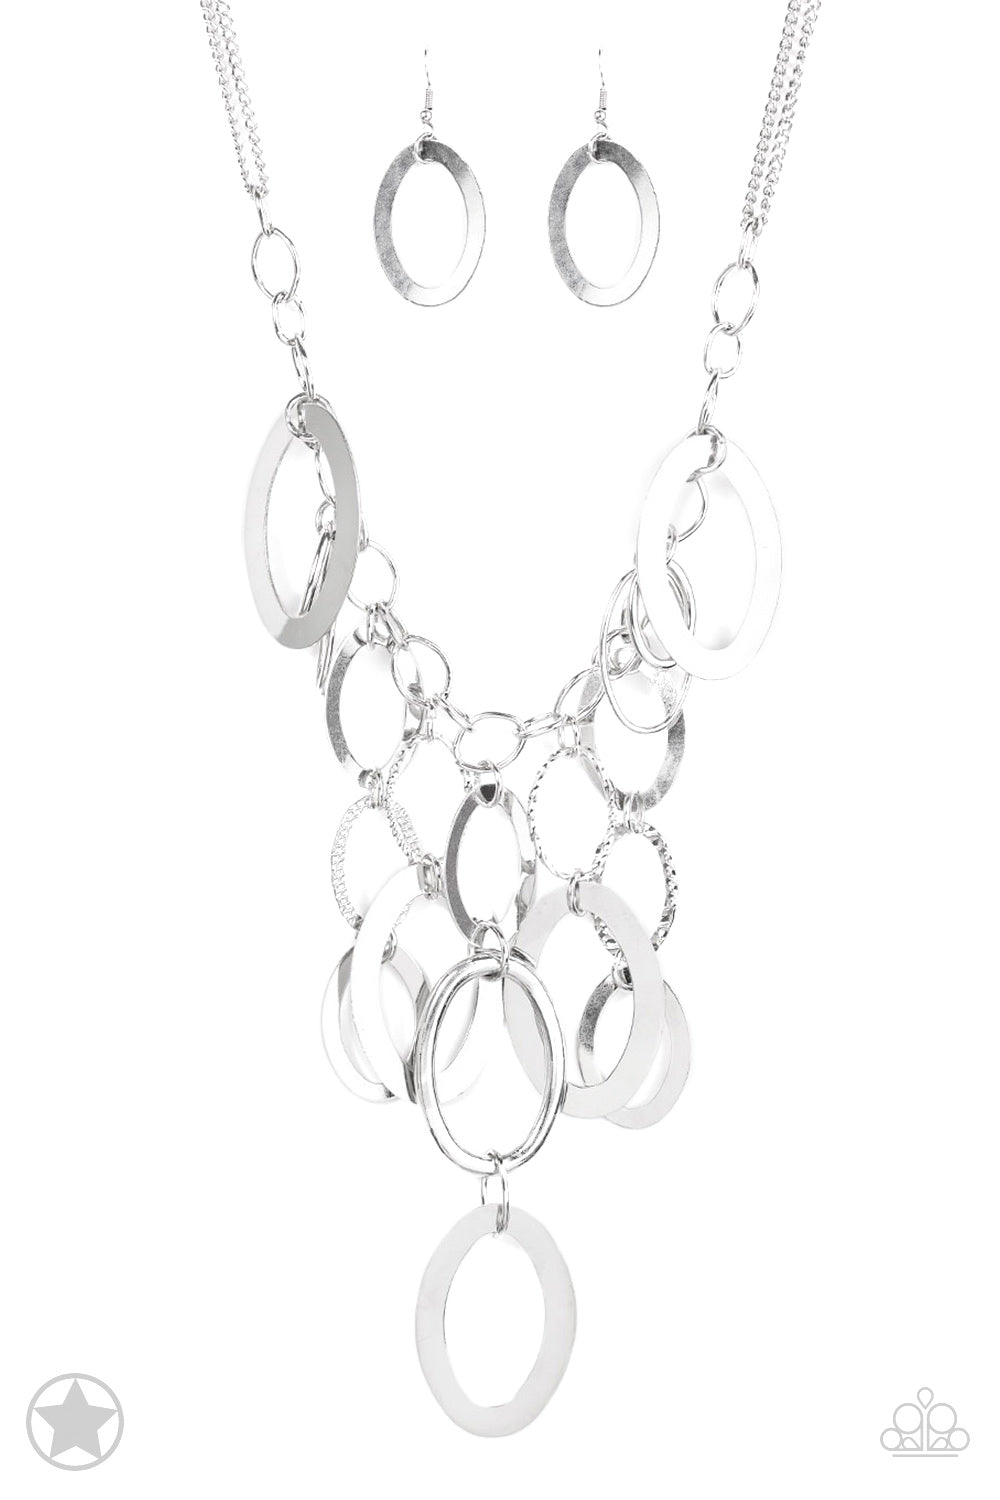 A Silver Spell-Paparazzi Jewelry